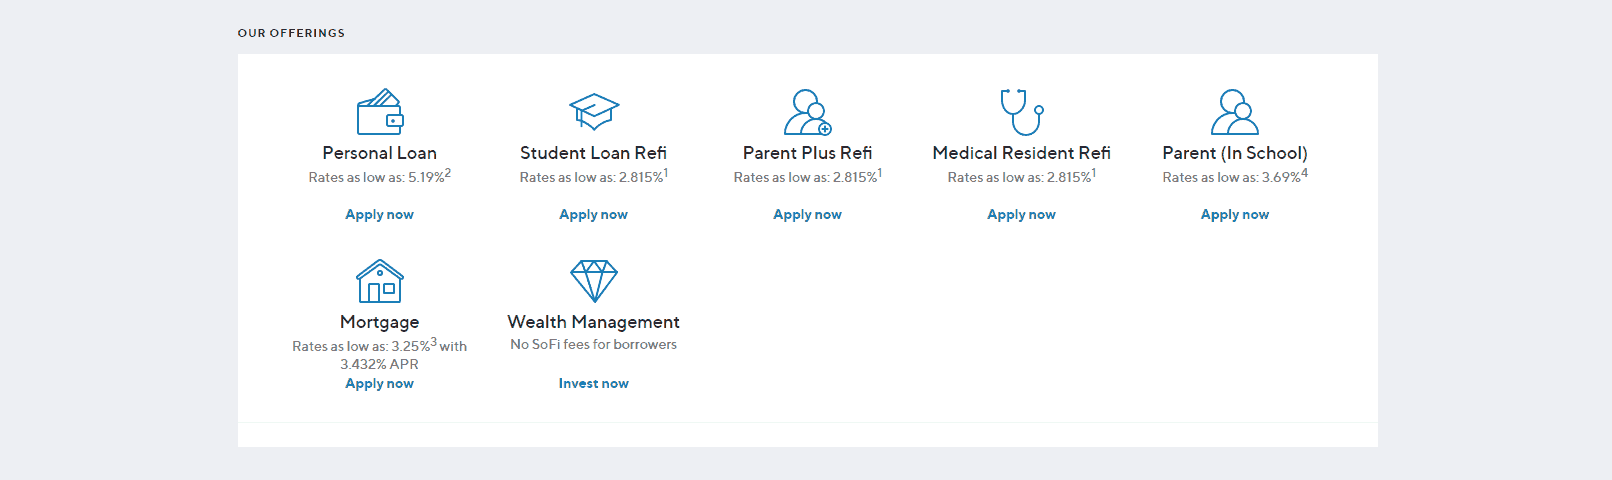 What Kind of Loans Does SoFi Offer